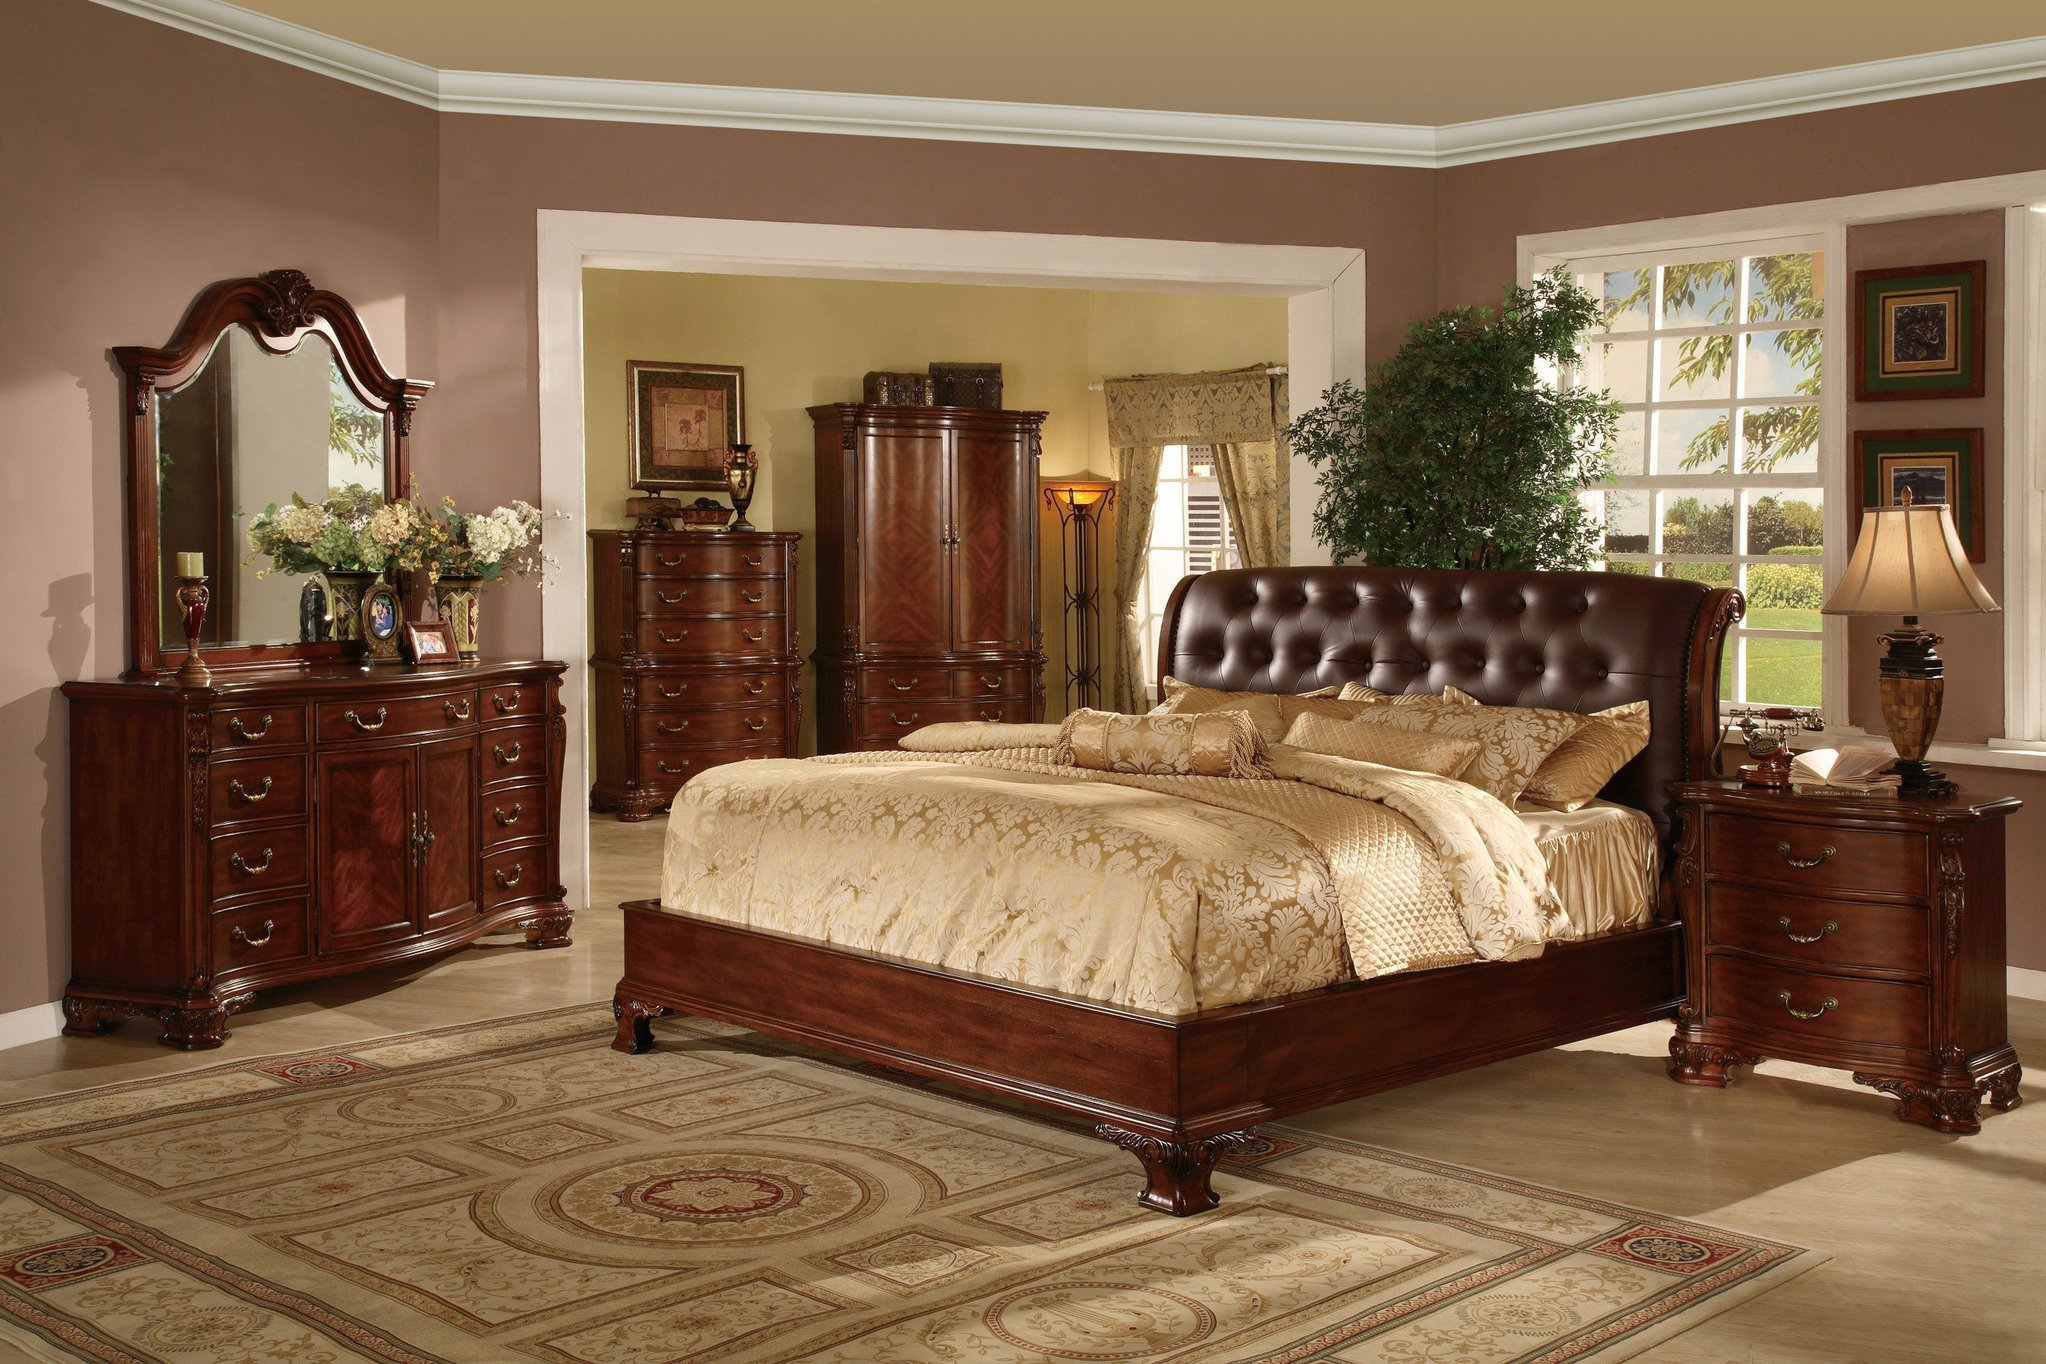 Best Tufted Leather Headboard Bed Traditional King And Queen With Pictures